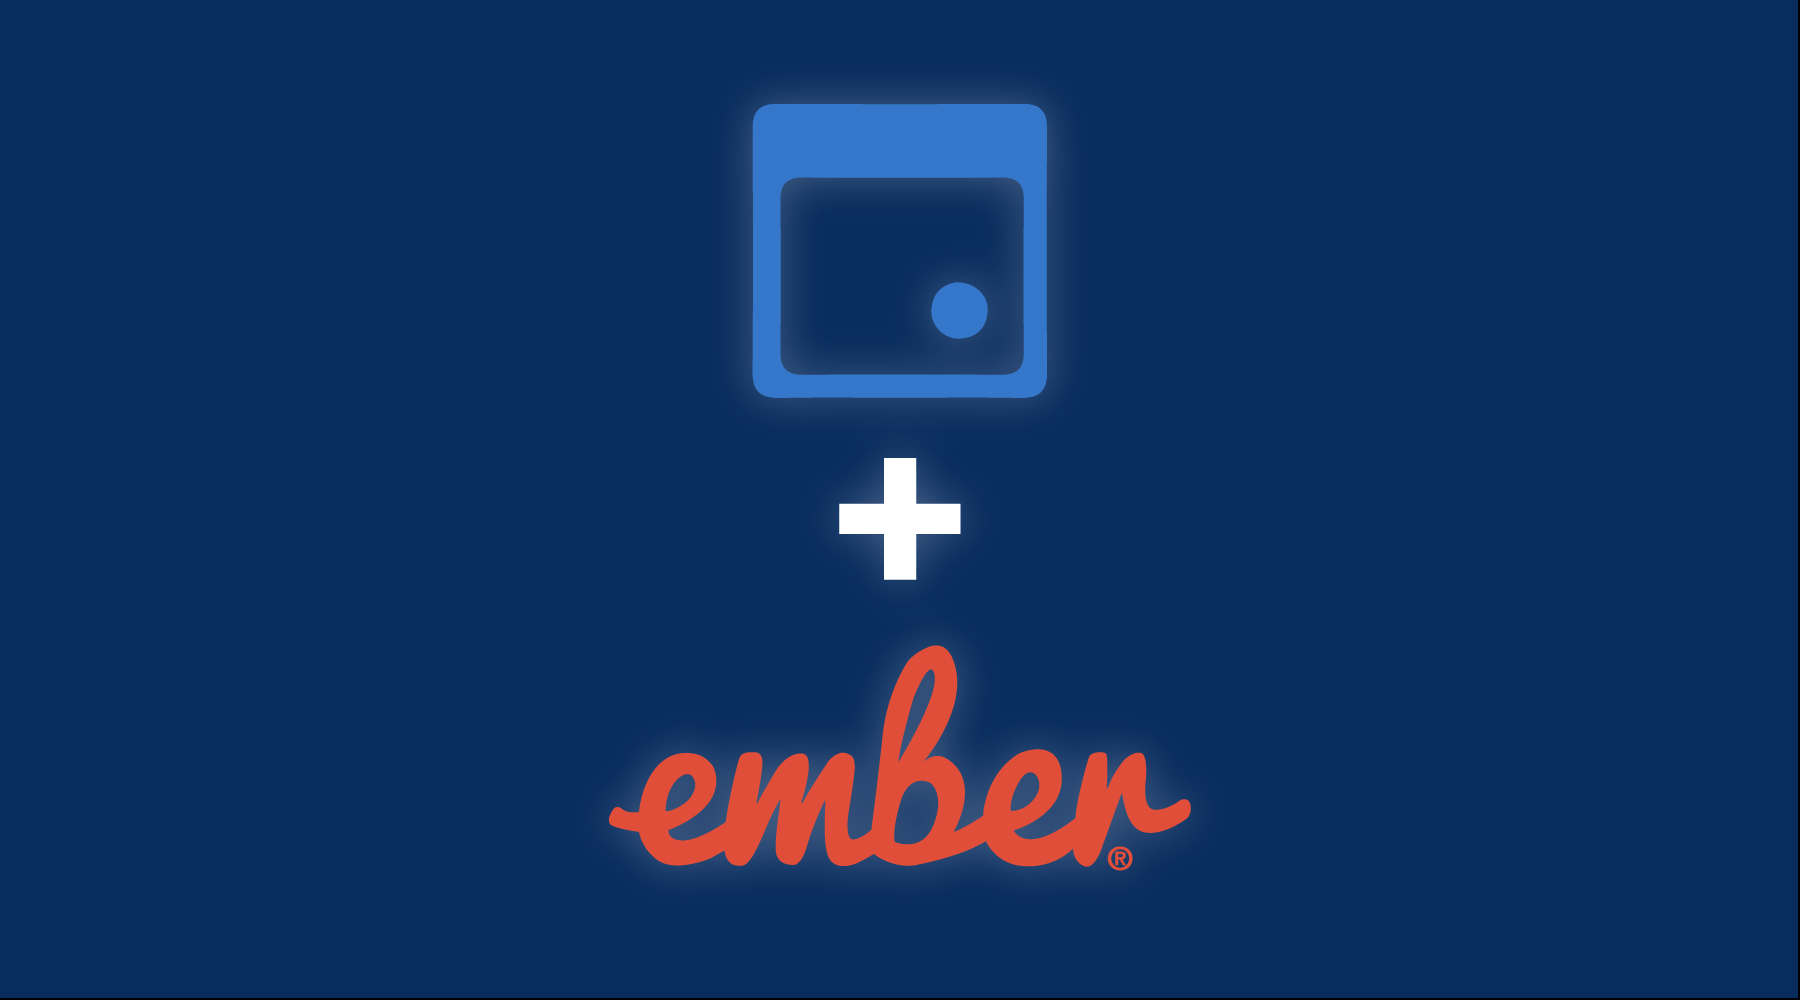 fullcalendar and ember logos with plus sign